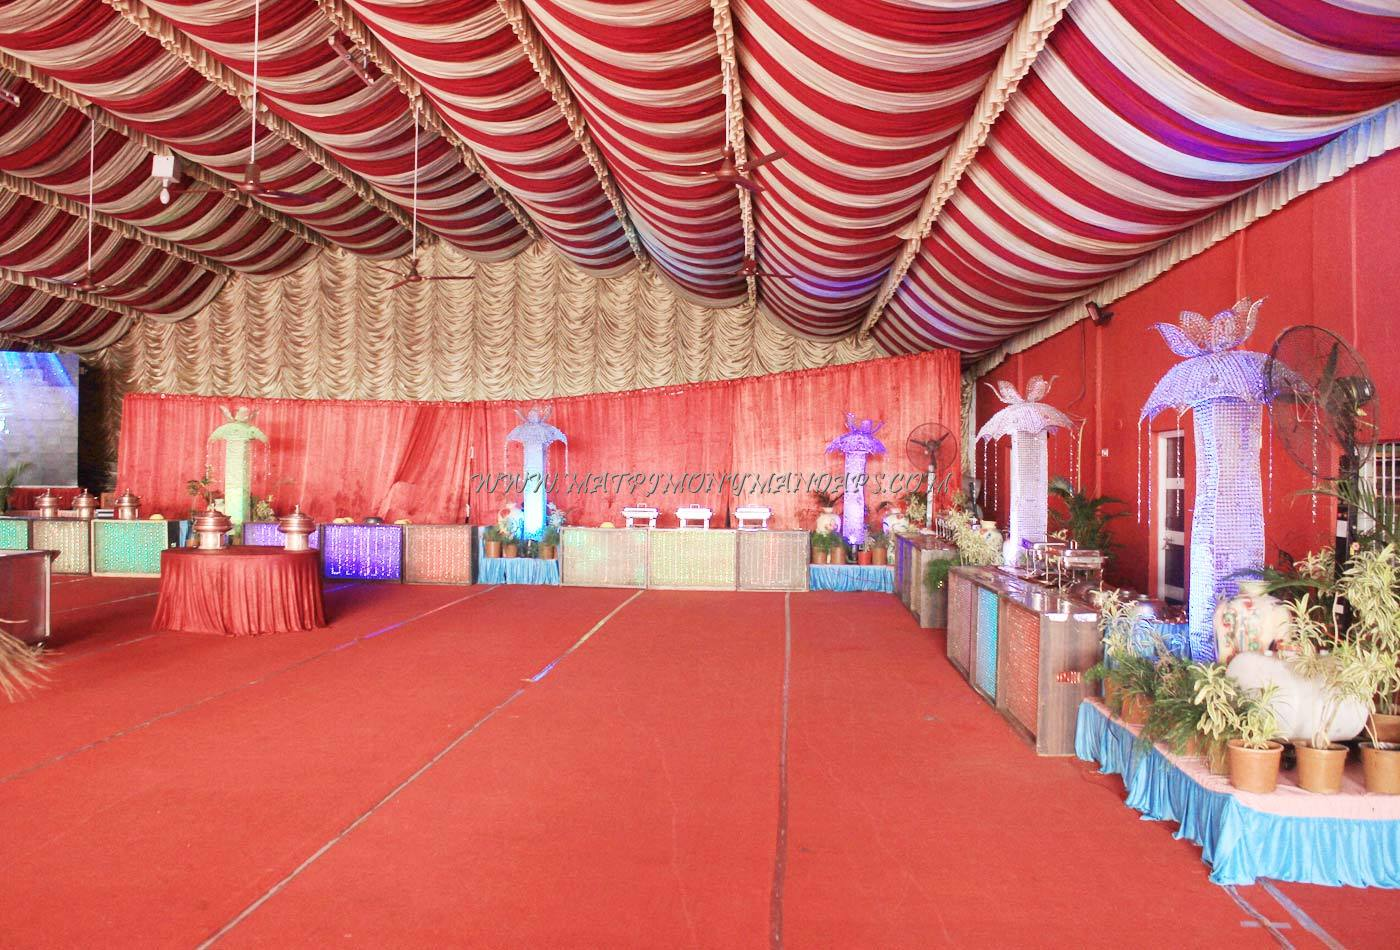 Find the availability of the Maneesha Banquet Hall in Moula Ali, Hyderabad and avail special offers